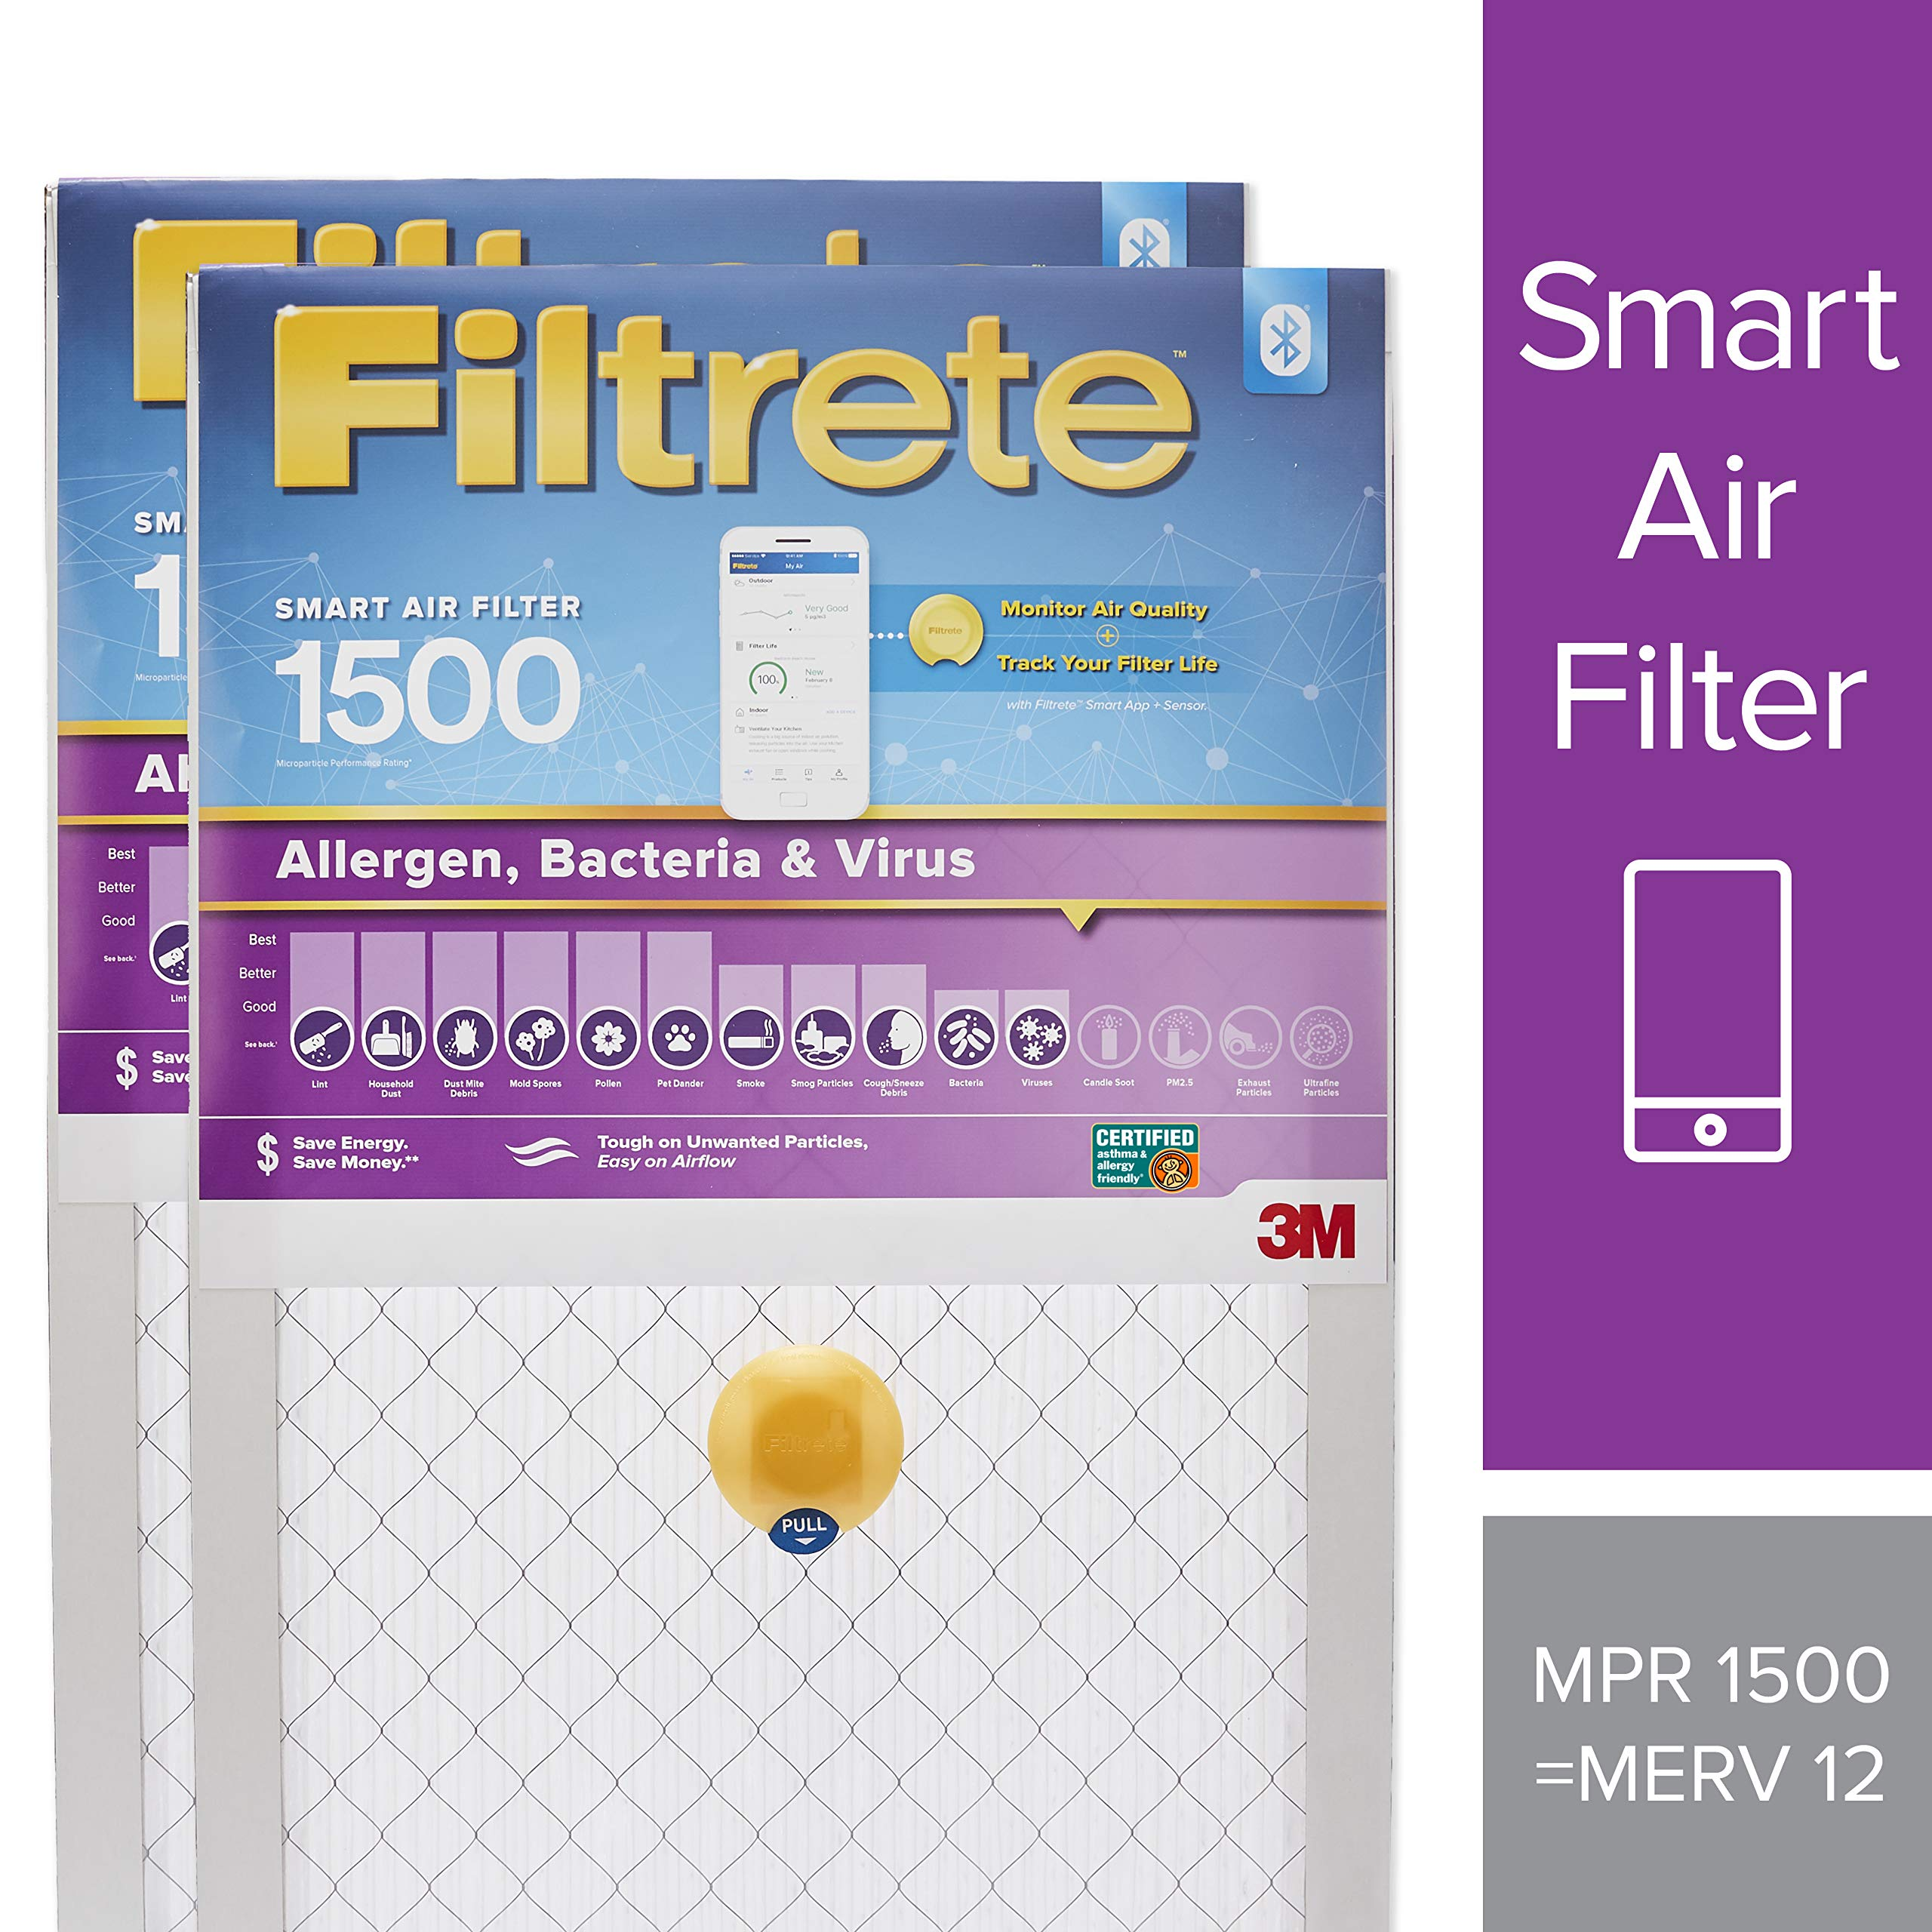 Filtrete 16x25x1 Smart Air Filter, MPR 1500, Allergen, Bacteria & Virus AC Furnace Air Filter, 2-Pack - S-UR01-2PK-6E by Filtrete